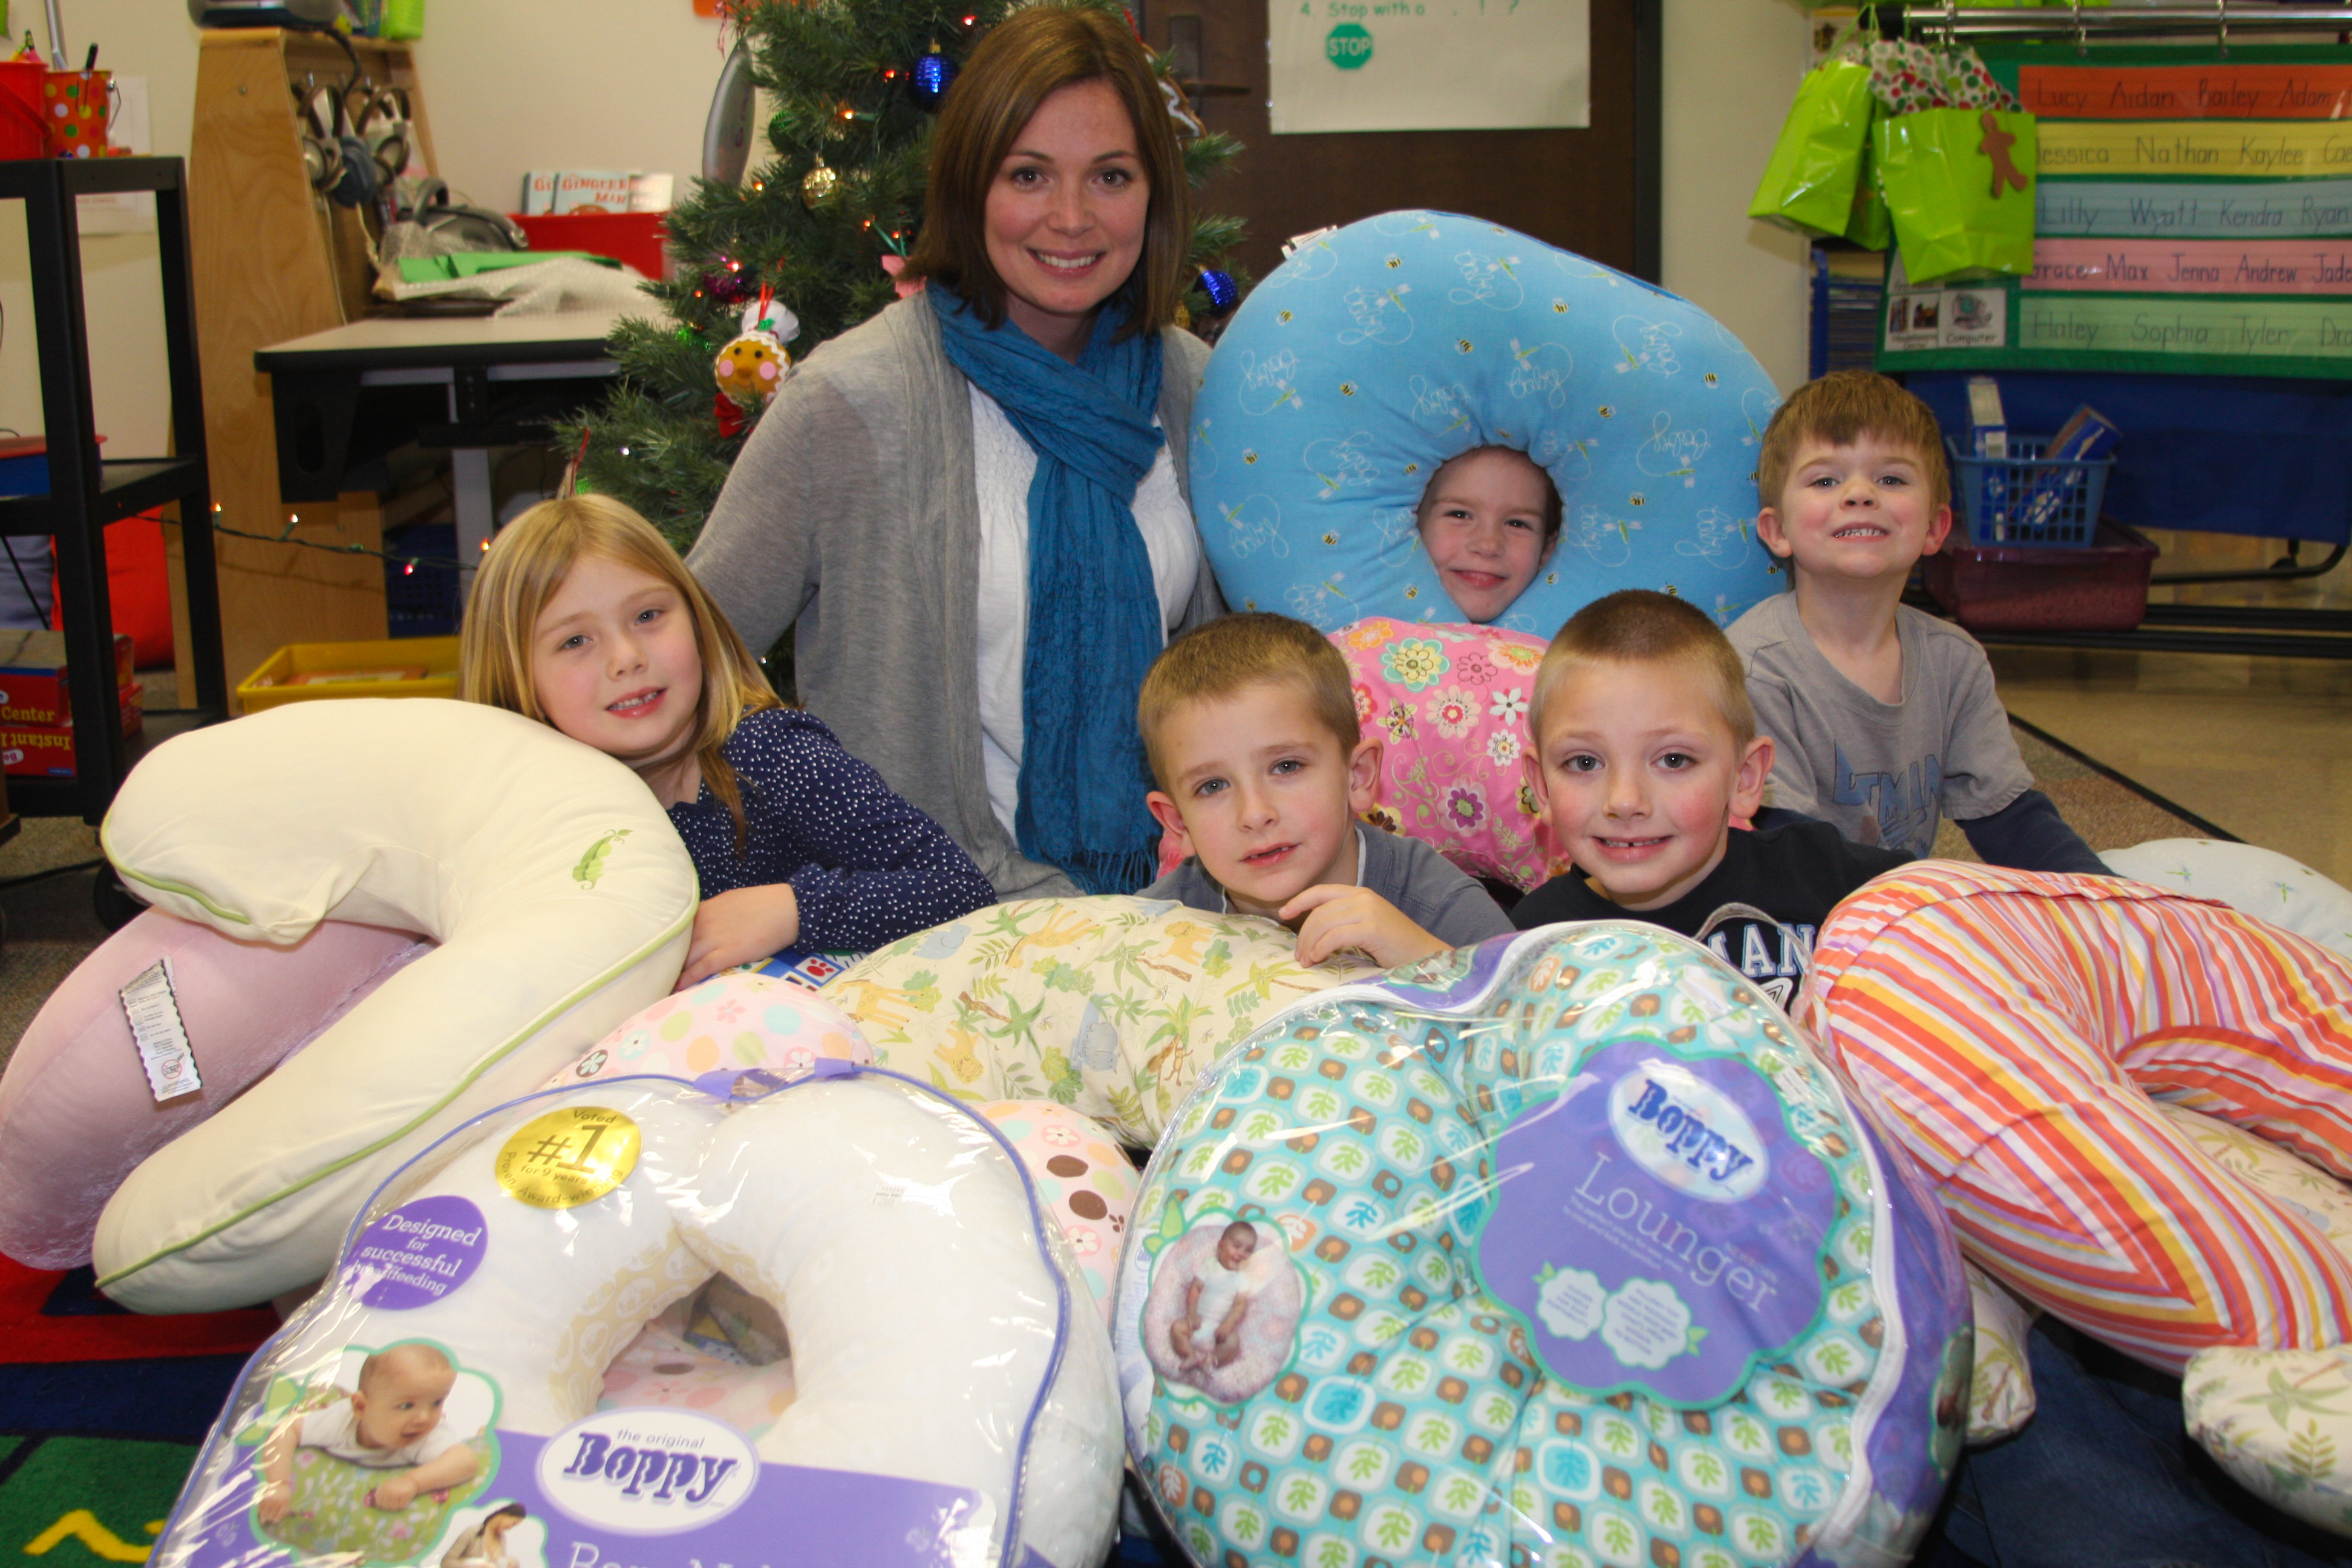 Some of the fantastic kindergarten students at Hinkle Creek Elementary that so lovingly collected pillows and socks for the little ones in China